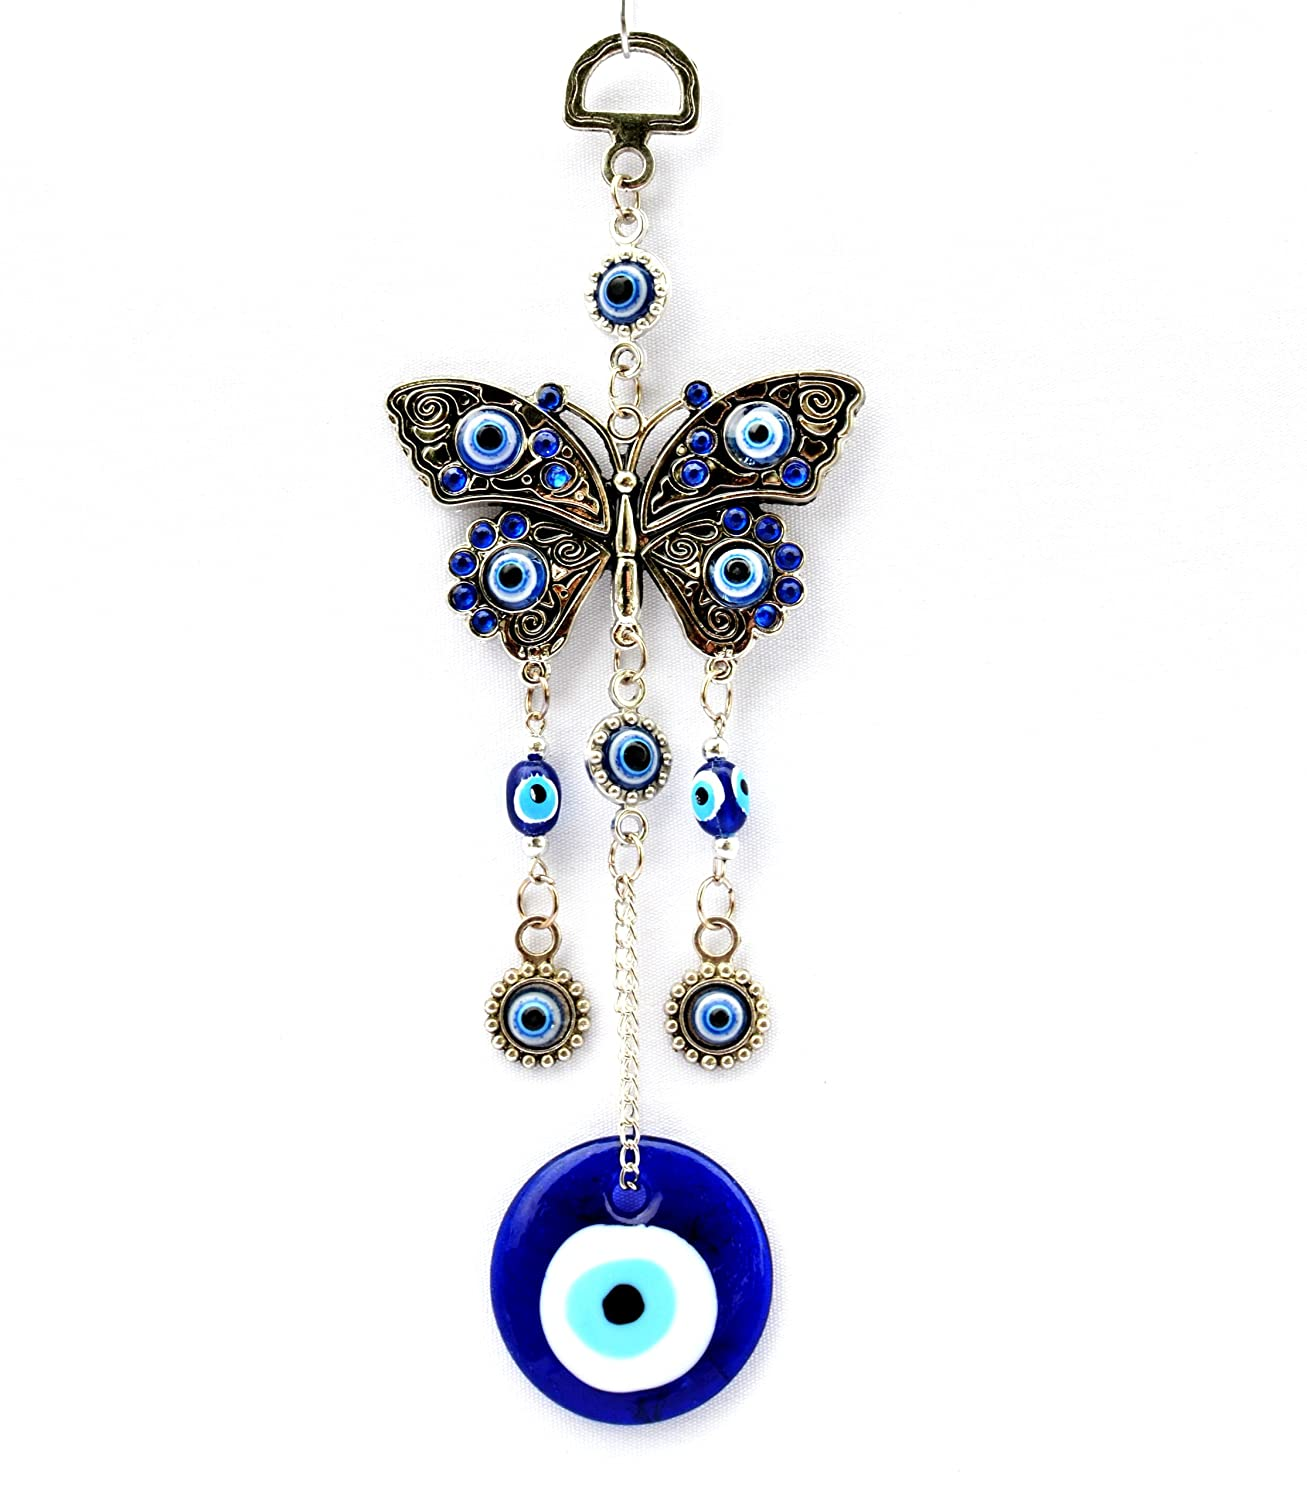 Amazon blue evil eye with butterfly hanging decoration amazon blue evil eye with butterfly hanging decoration ornament with a betterdecor pouch 003 home kitchen buycottarizona Image collections